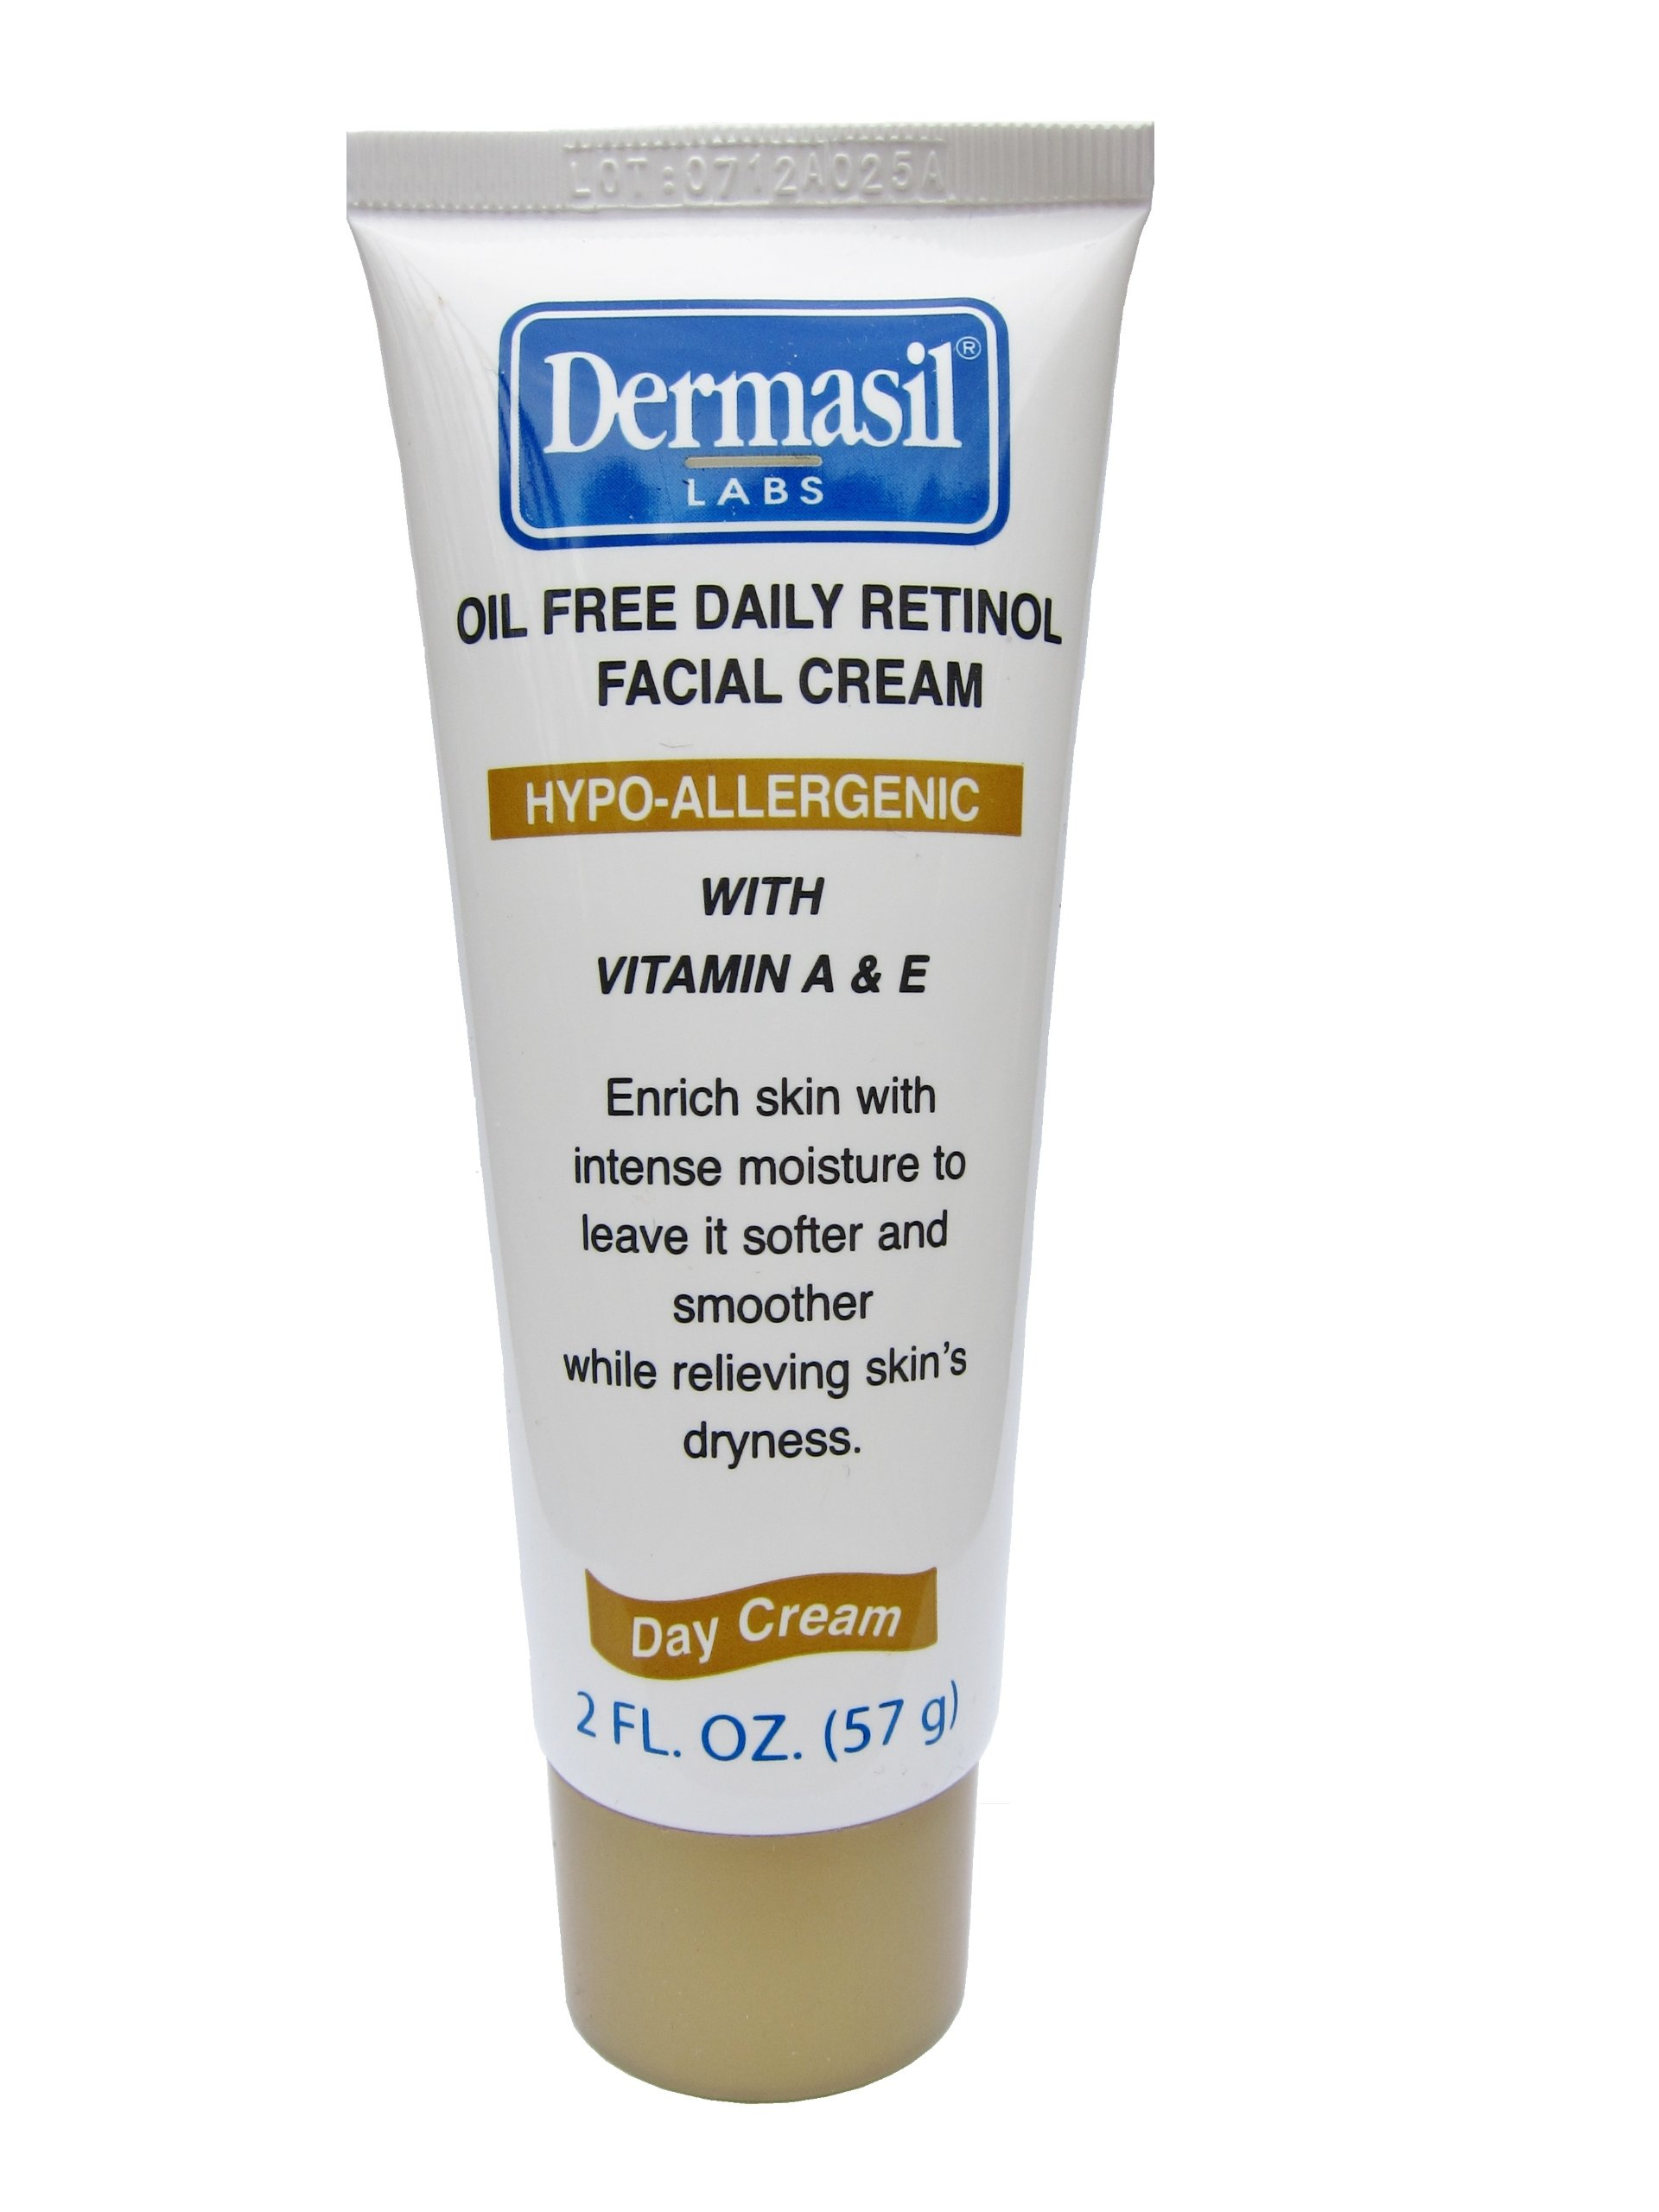 Dermasil Labs Oil Free Daily Retinol Facial Cream 2 Fluid Ounces